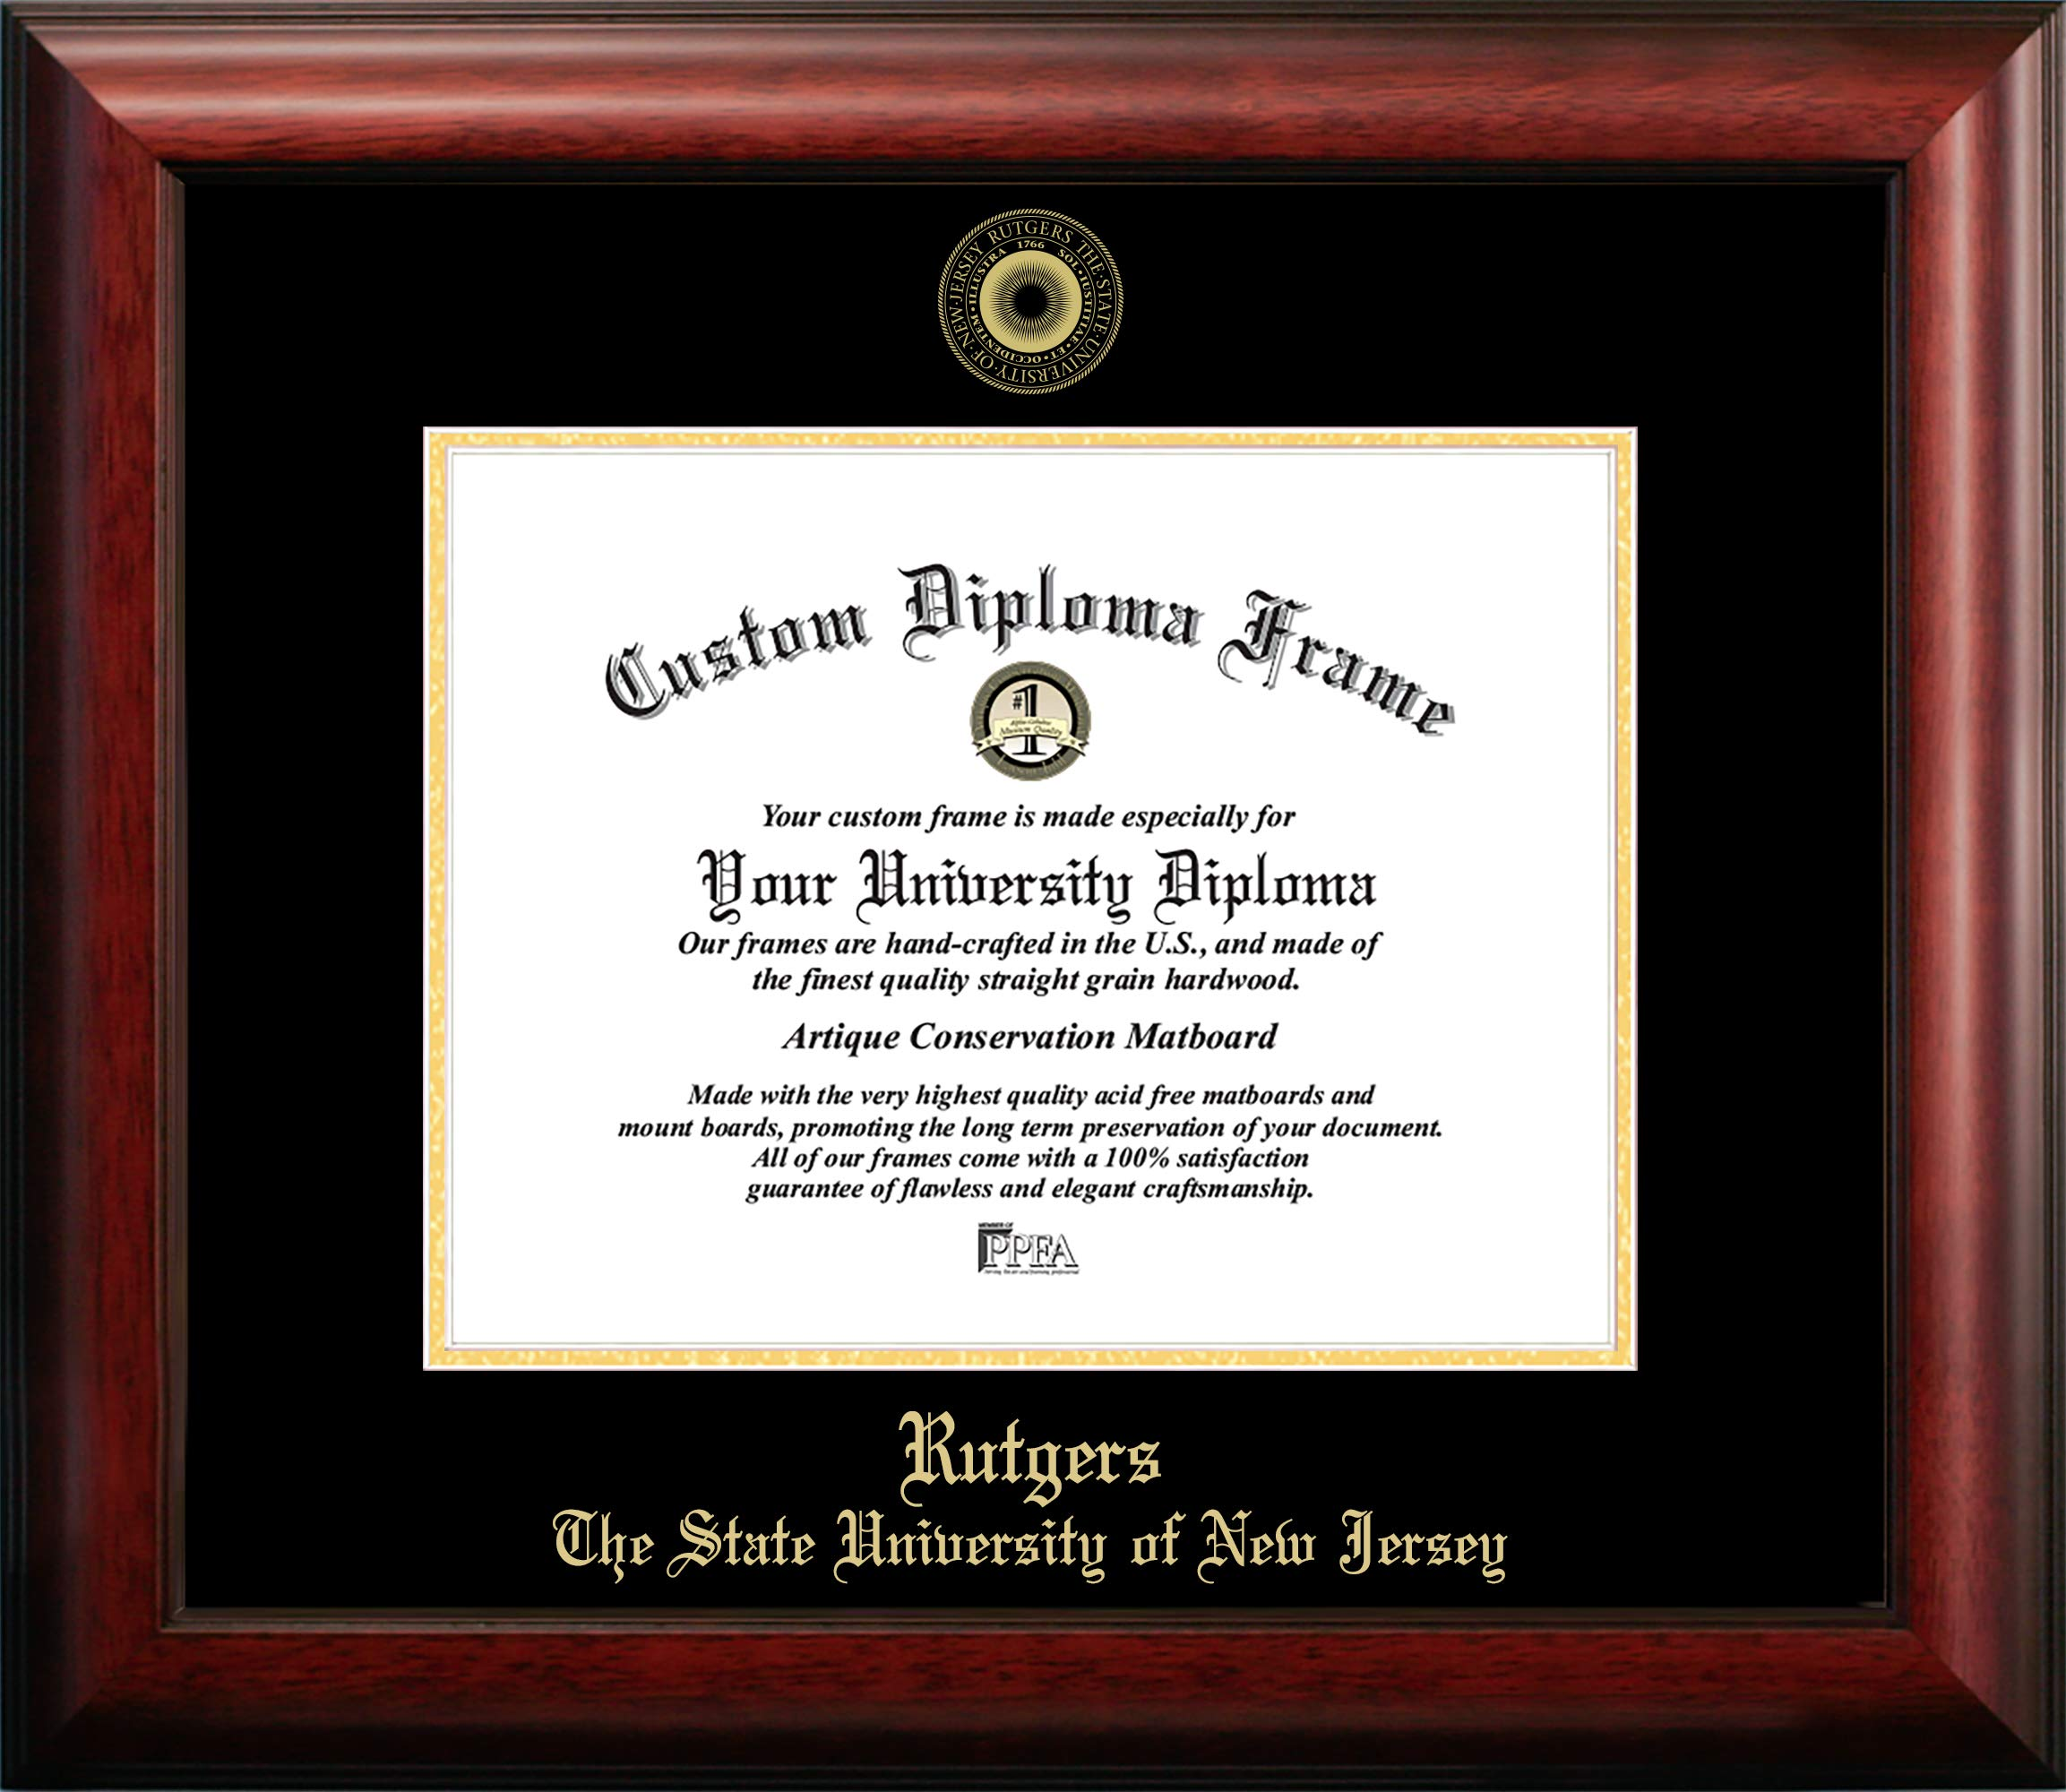 Campus Images Rutgers University, The State University of New Jersey, 11w x 8.5h Gold Embossed Diploma Frame